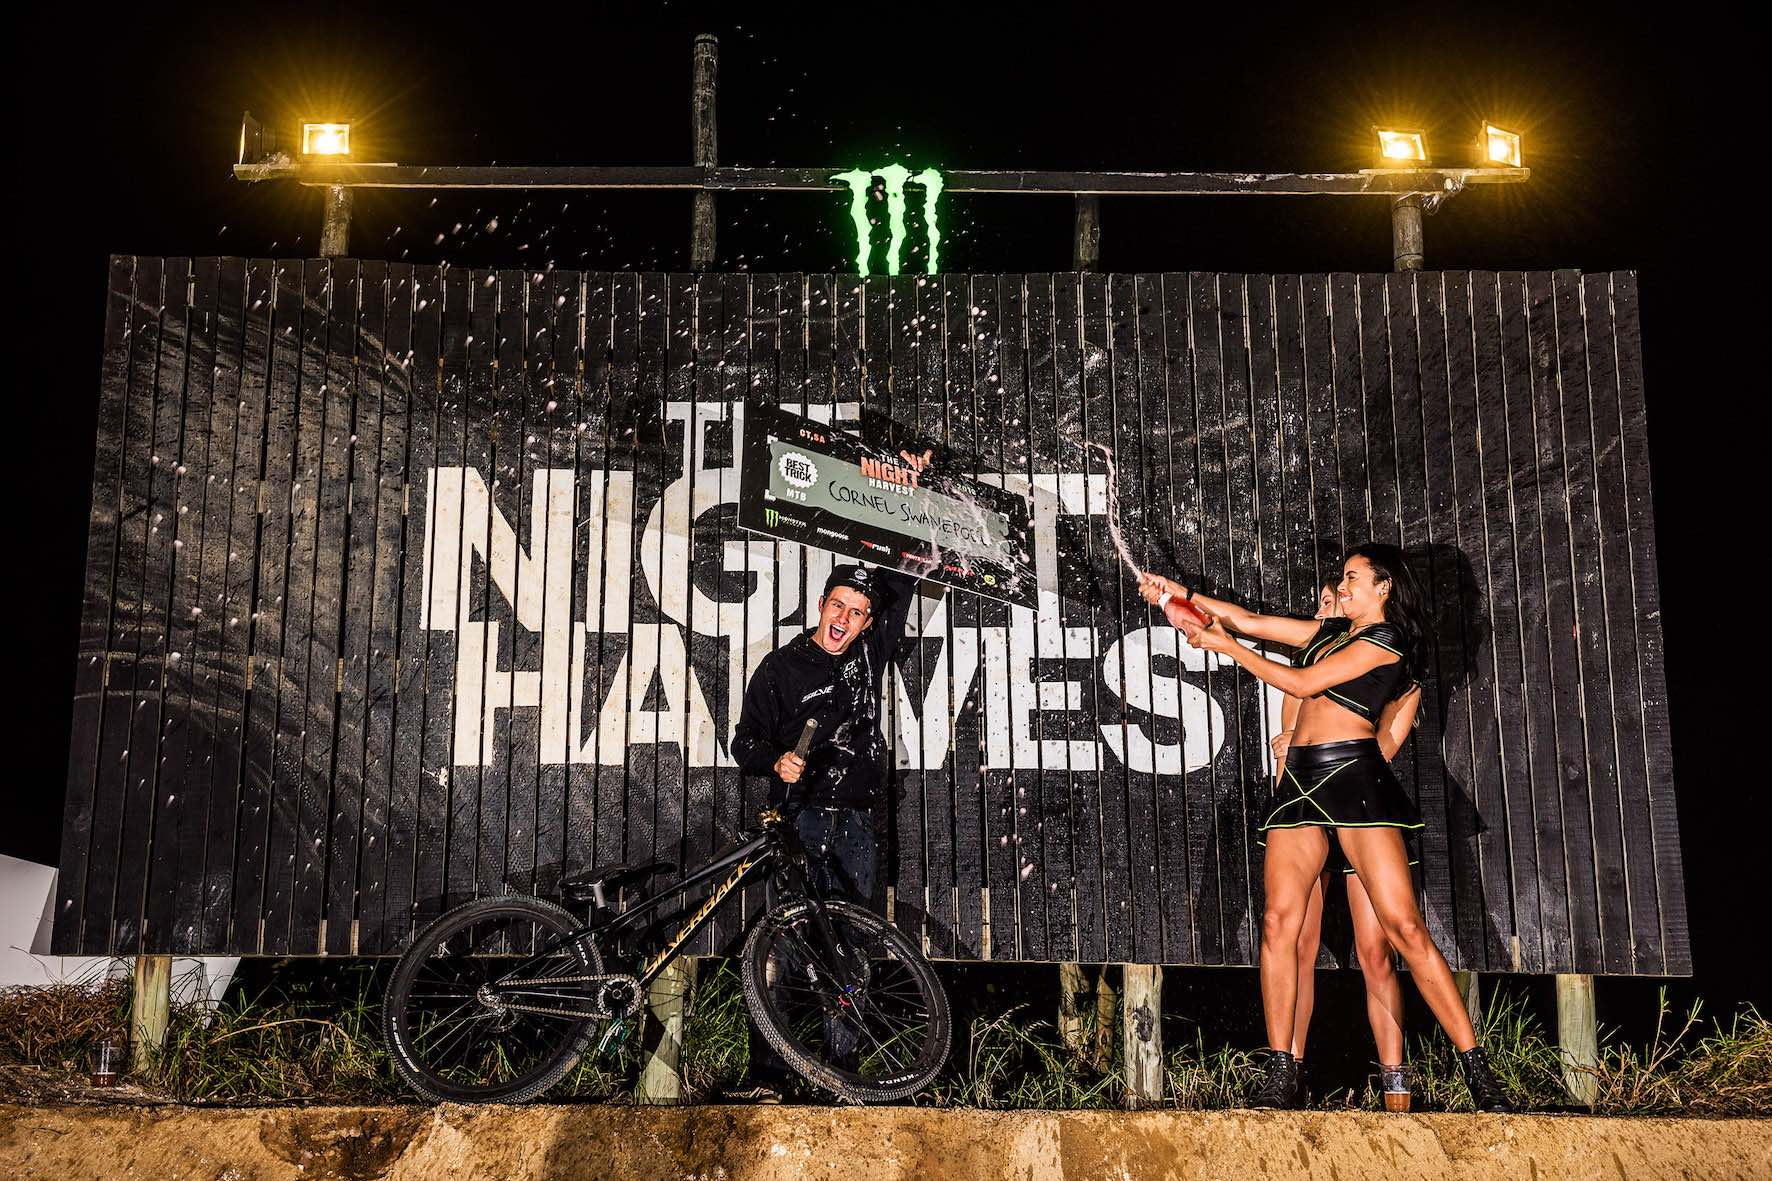 The Night Harvest MTB Best Trick Podium